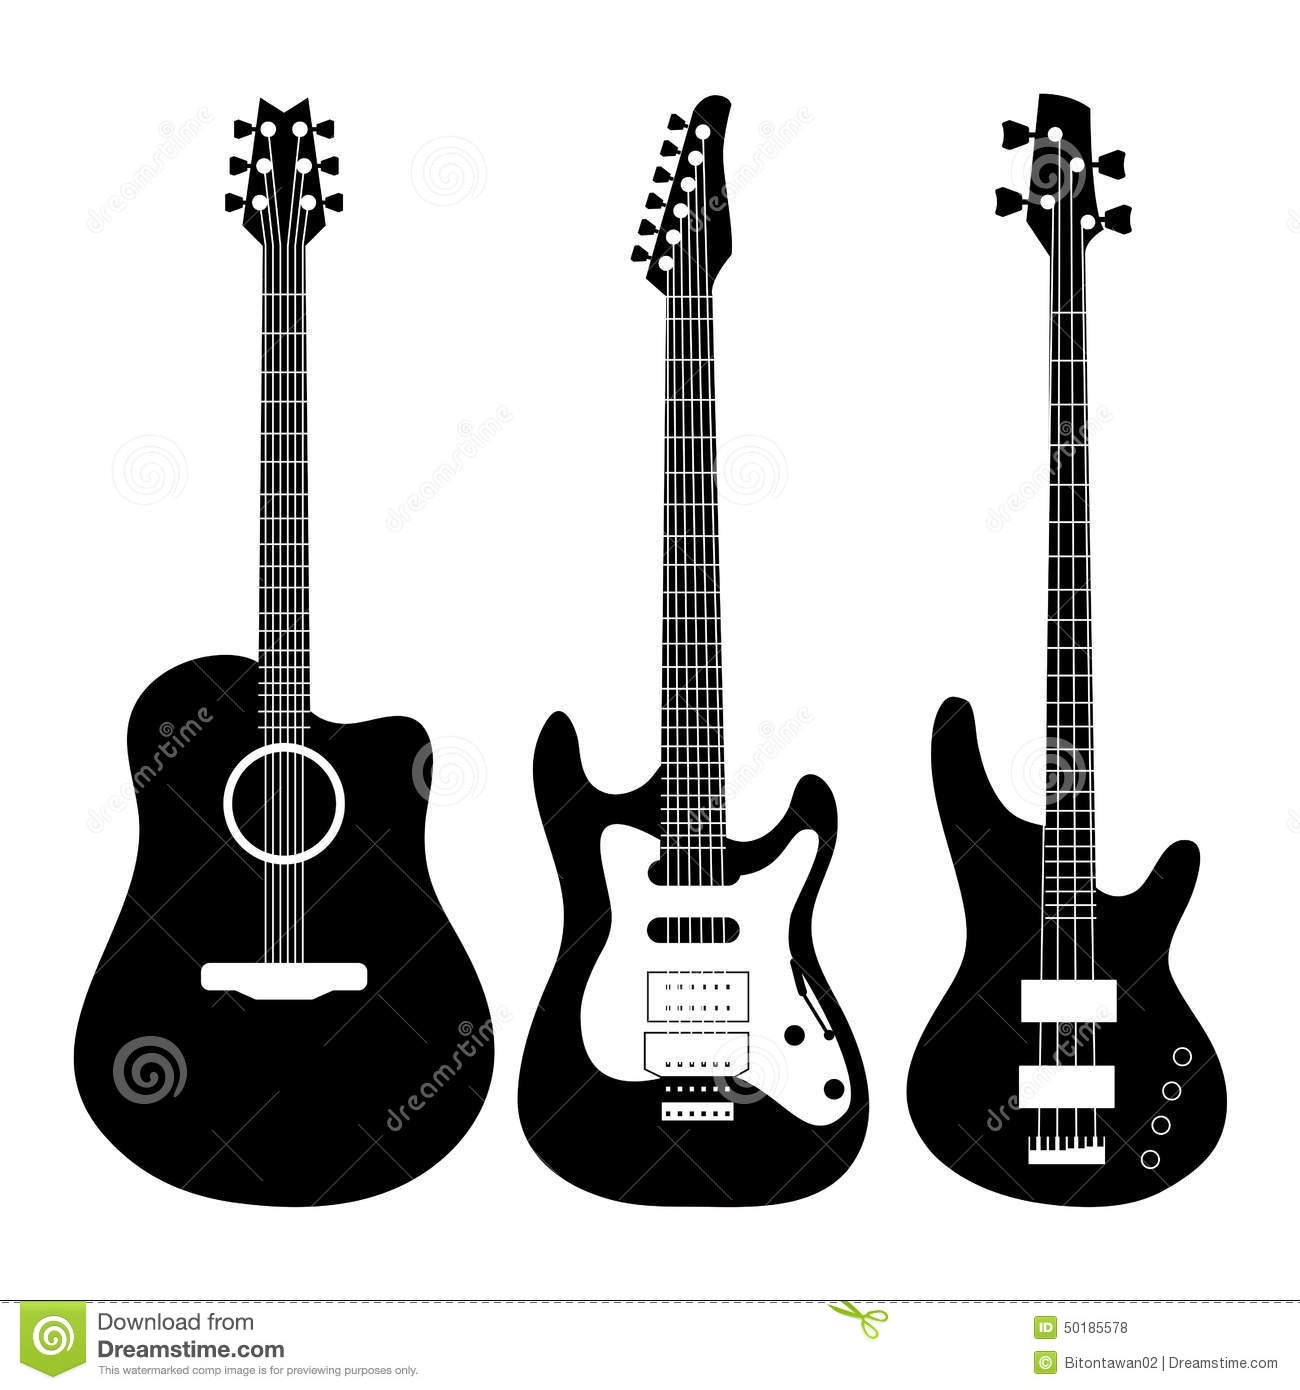 Electric Guitar Vector Stock Vector - Image: 50185578